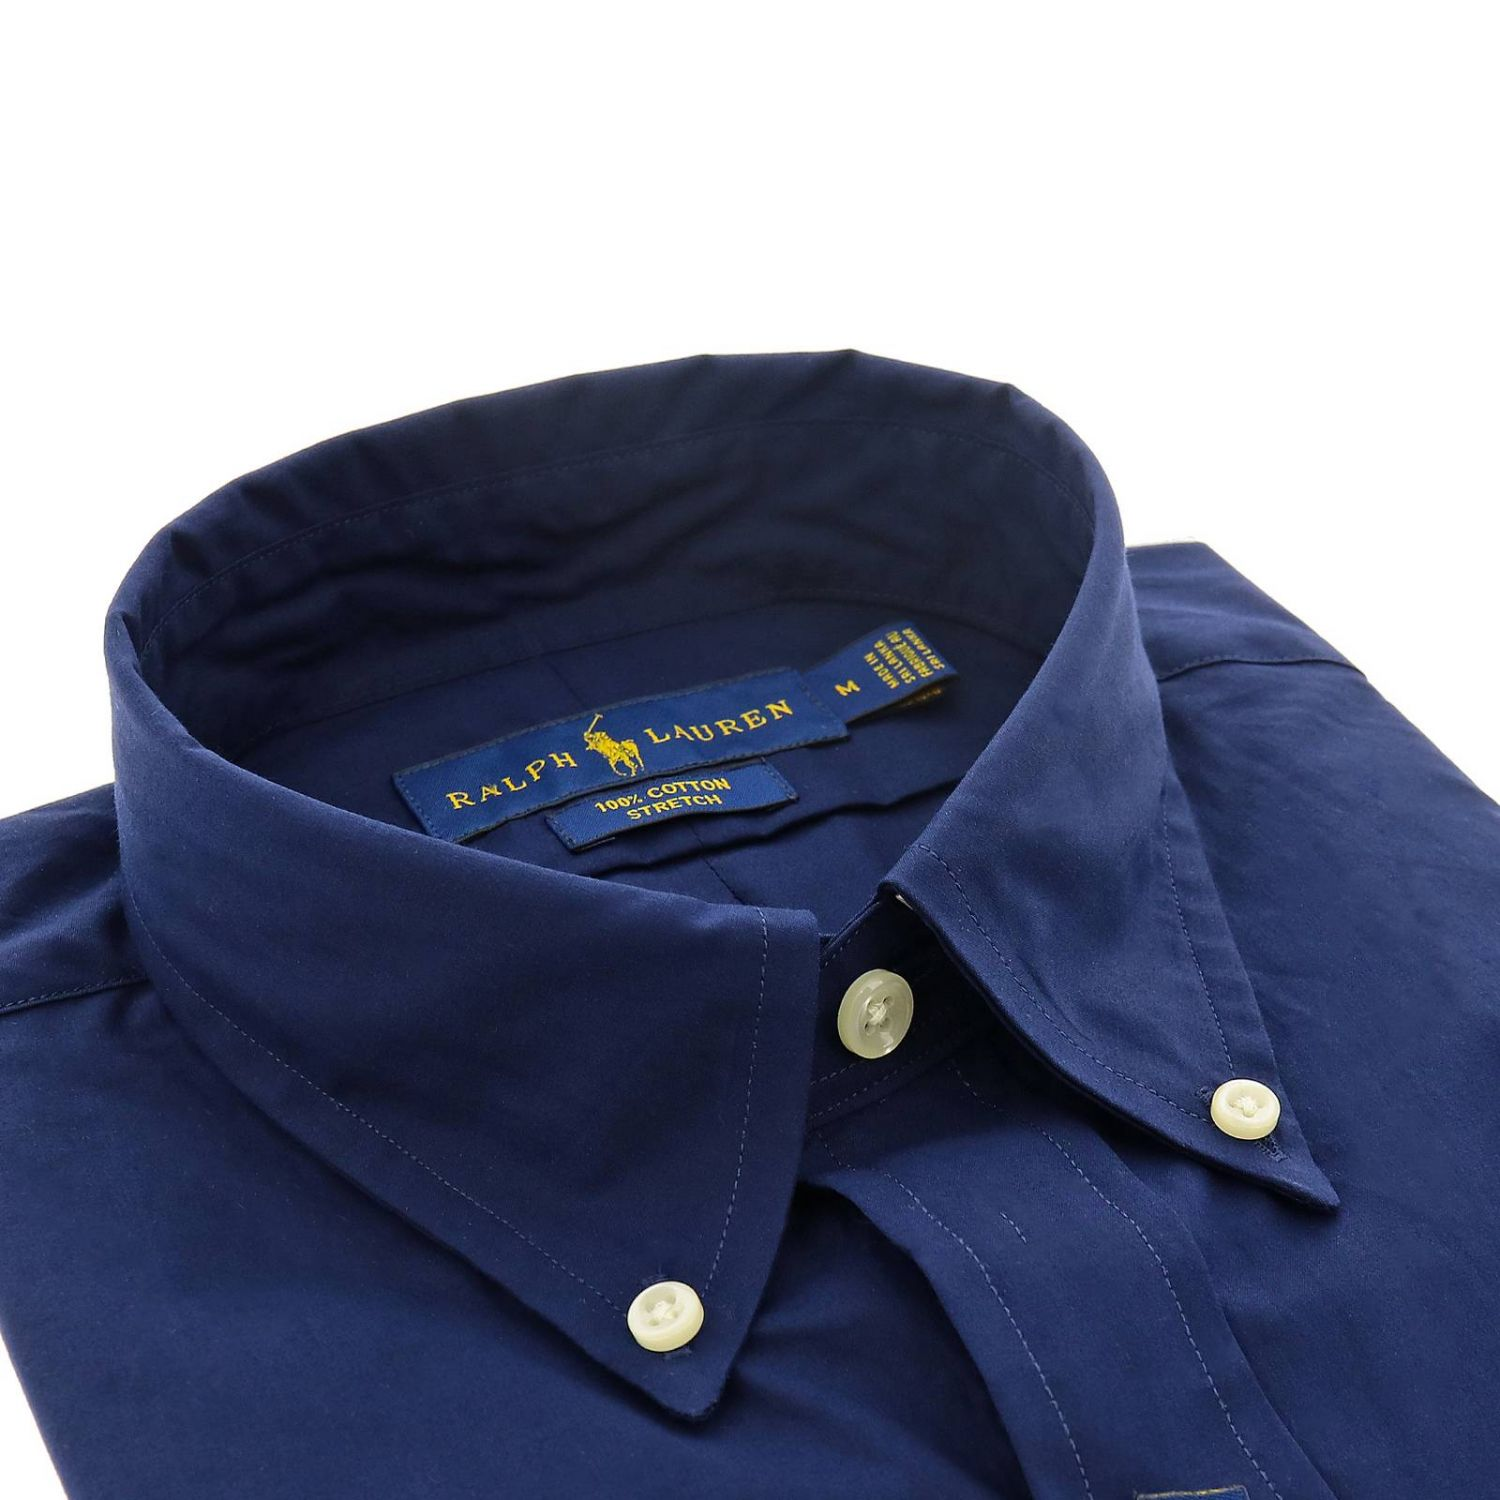 Camisa slim fit natural stretch con cuello abotonado y logo de Polo Ralph Lauren azul oscuro 2